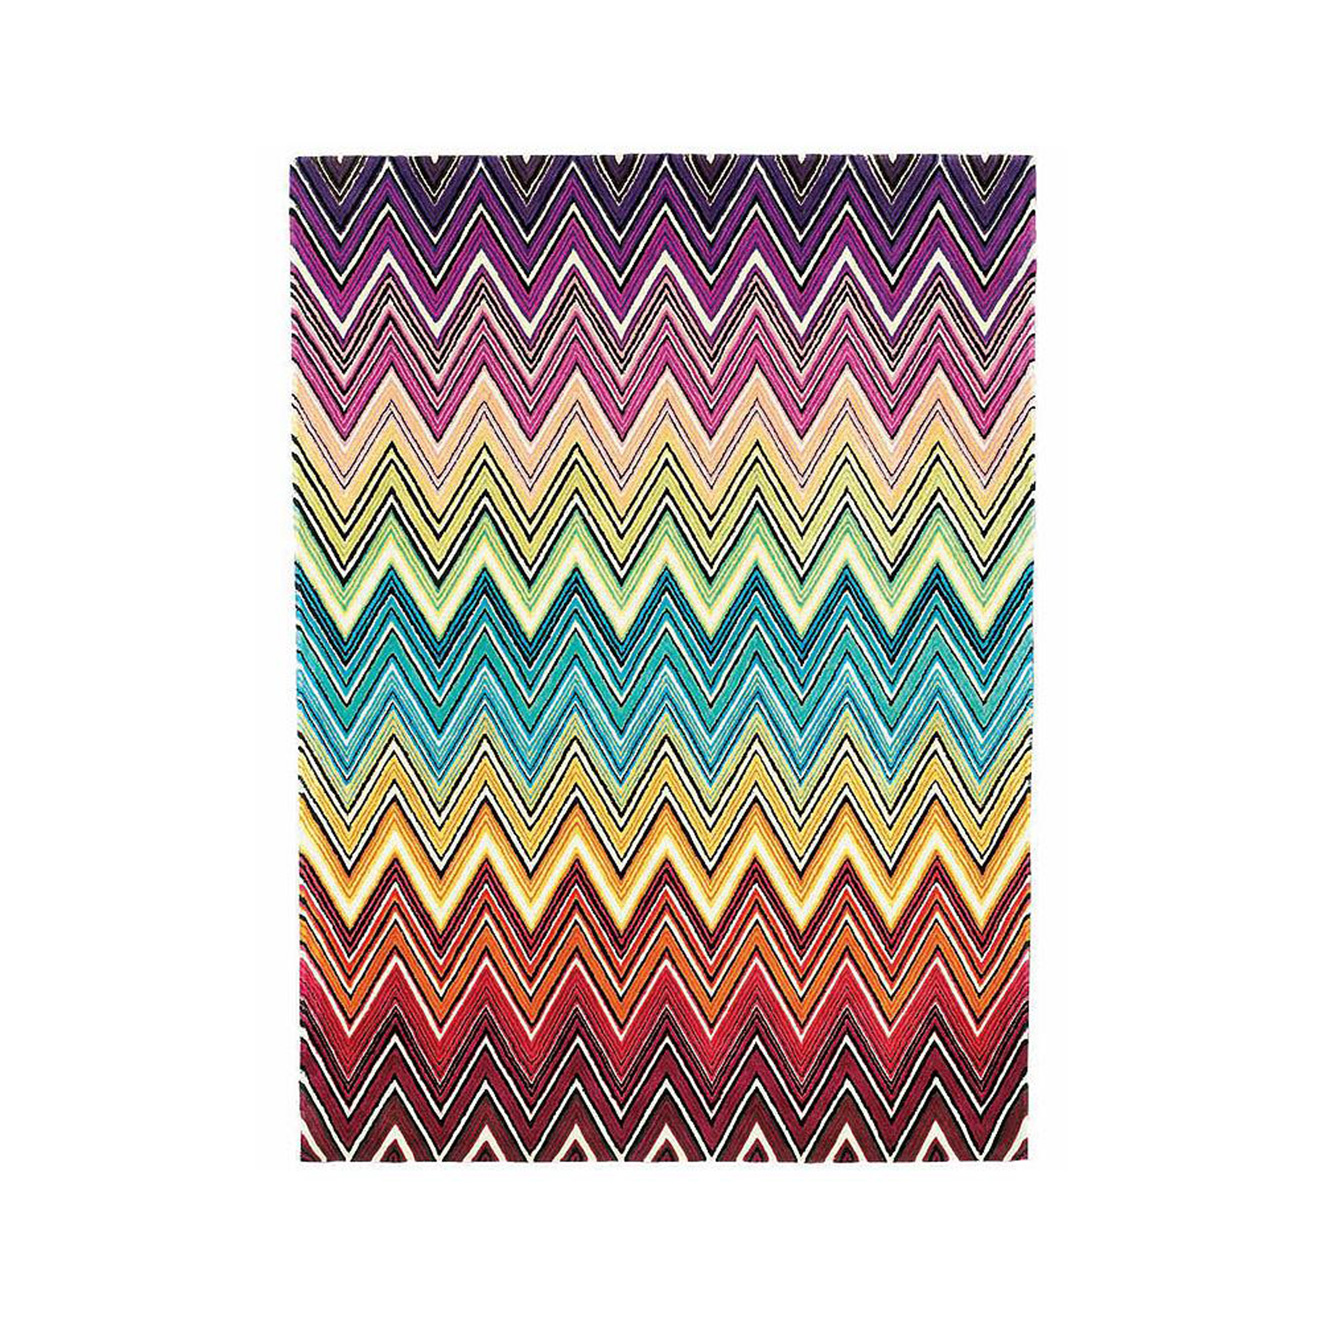 Lluwa Velours Rug by Missoni Home